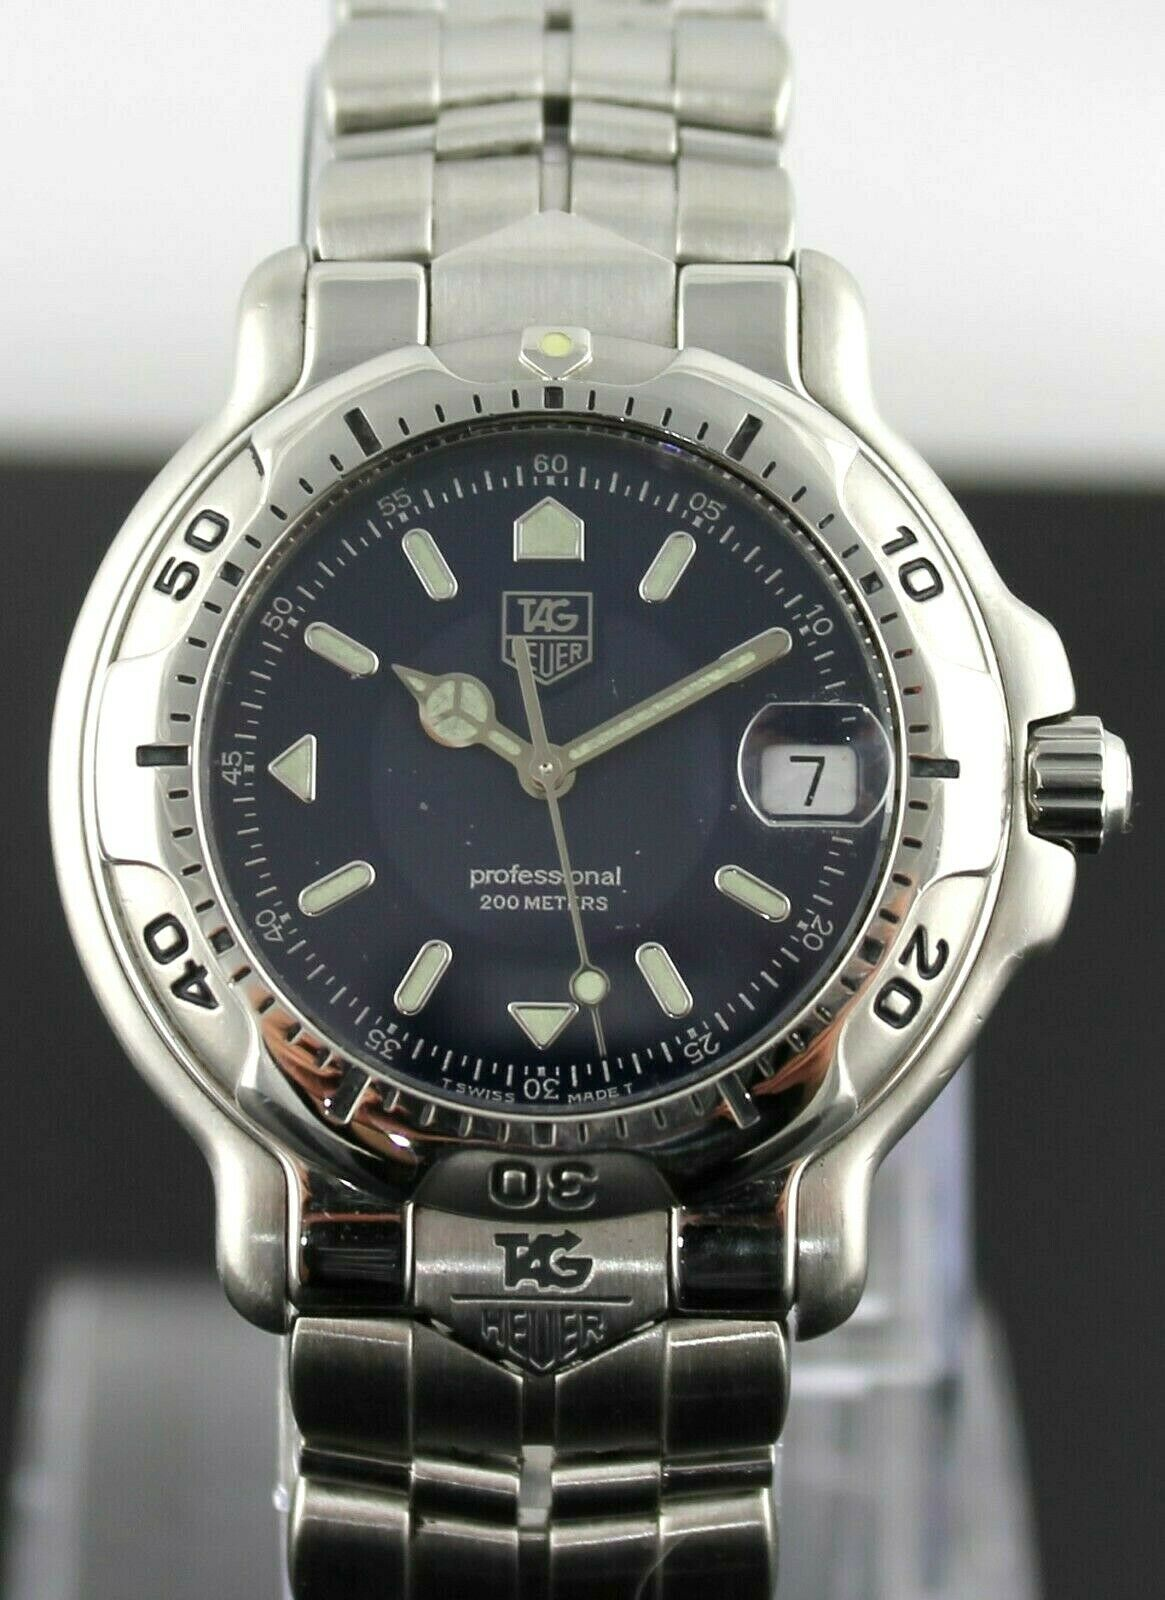 TAG HEUER 6000 PROFESSIONAL WH1115.BA0675 K1 MENS DARK BLUE SWISS CLASSIC WATCH